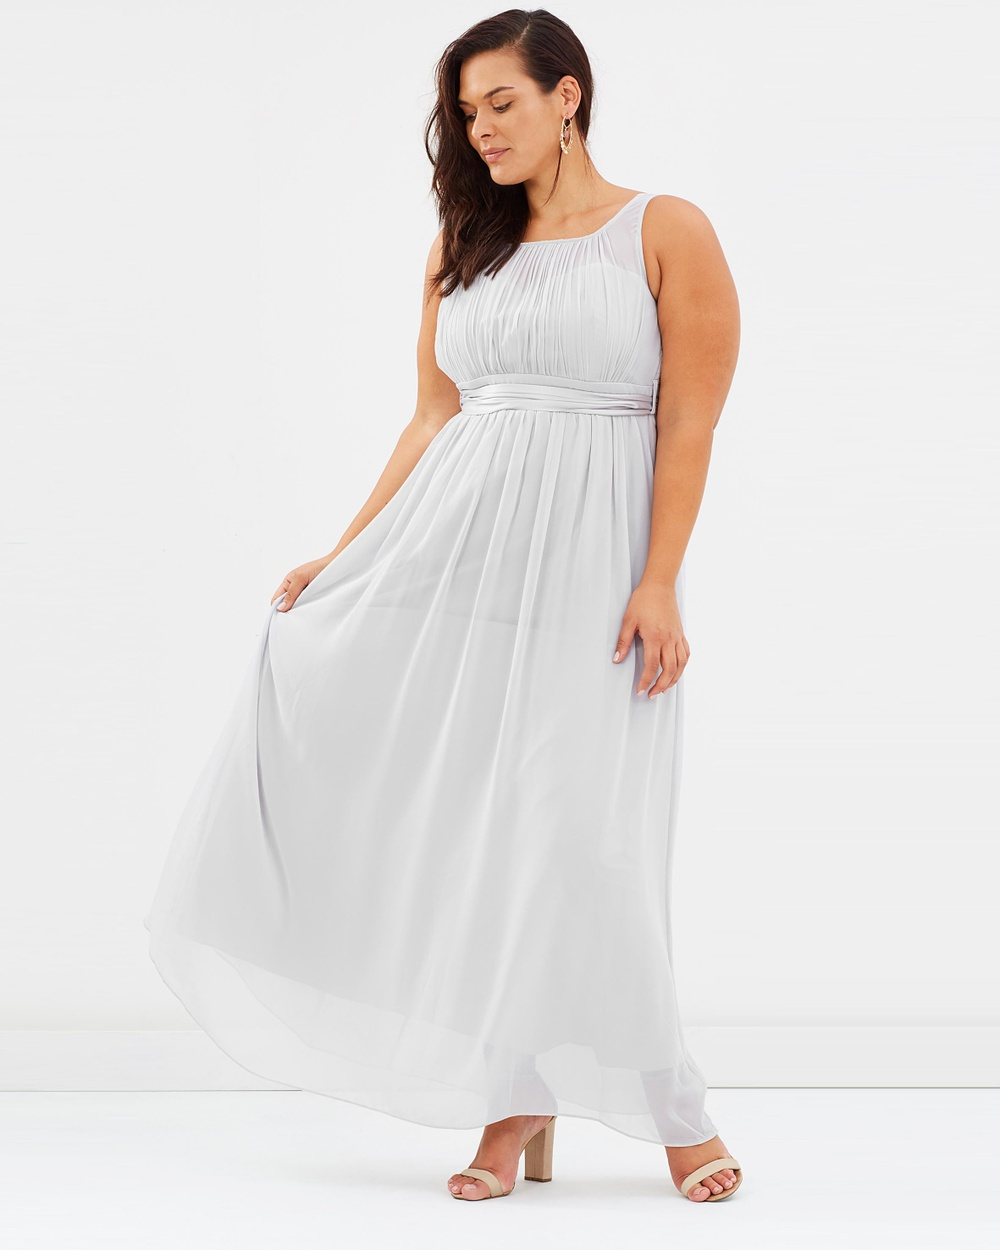 DP Curve Natalie Maxi Dress Bridesmaid Dresses Dove Grey Natalie Maxi Dress